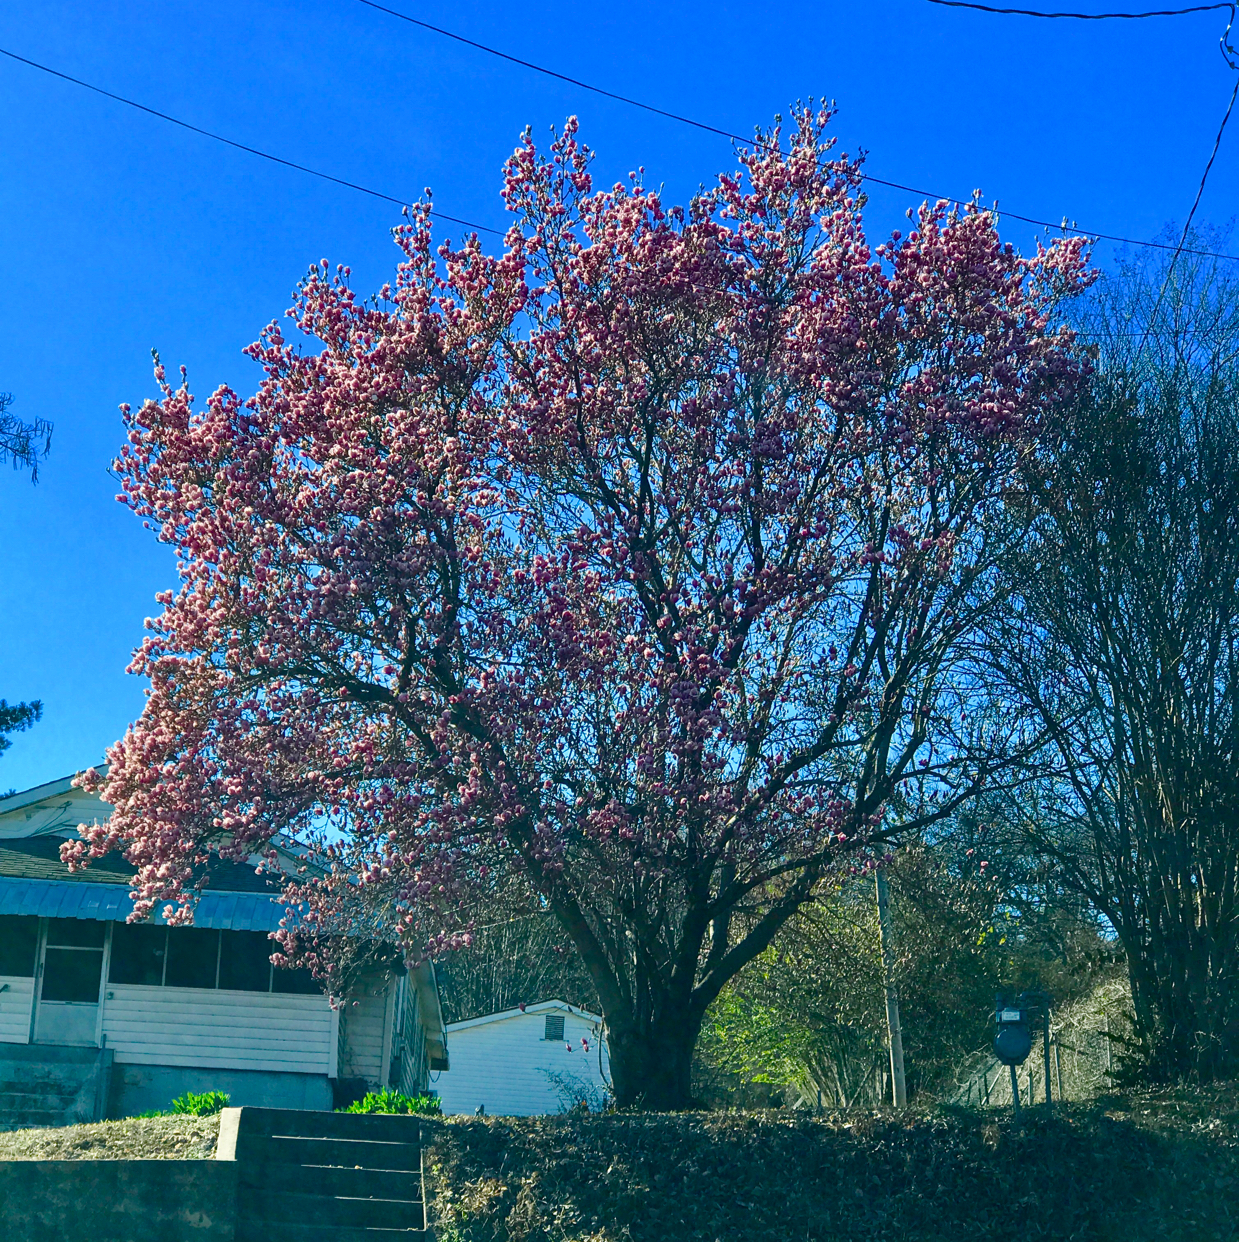 UserName:Rosanna Stubbs UserEmail:rosannastubbs@yahoo.com PhoneNumber:4792081556 Description:This was taken 2-15-17 in Van Buren. If it freezes again what will become of all the blooming trees etc.?? I've seen several blooms on interstate as well.